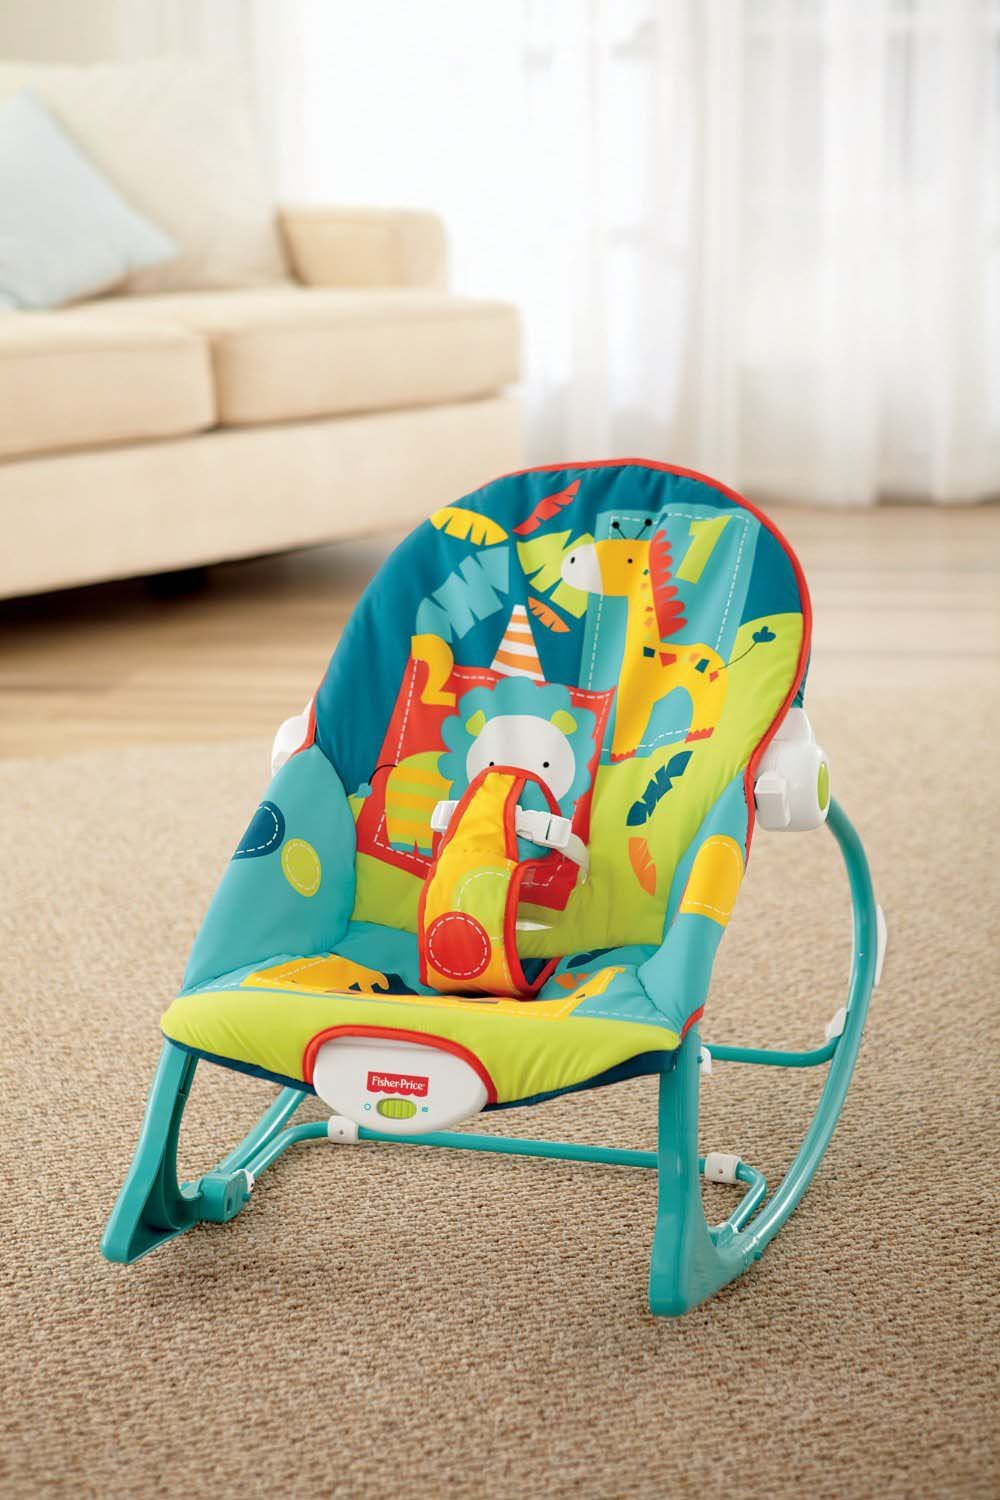 Baby bouncher seat